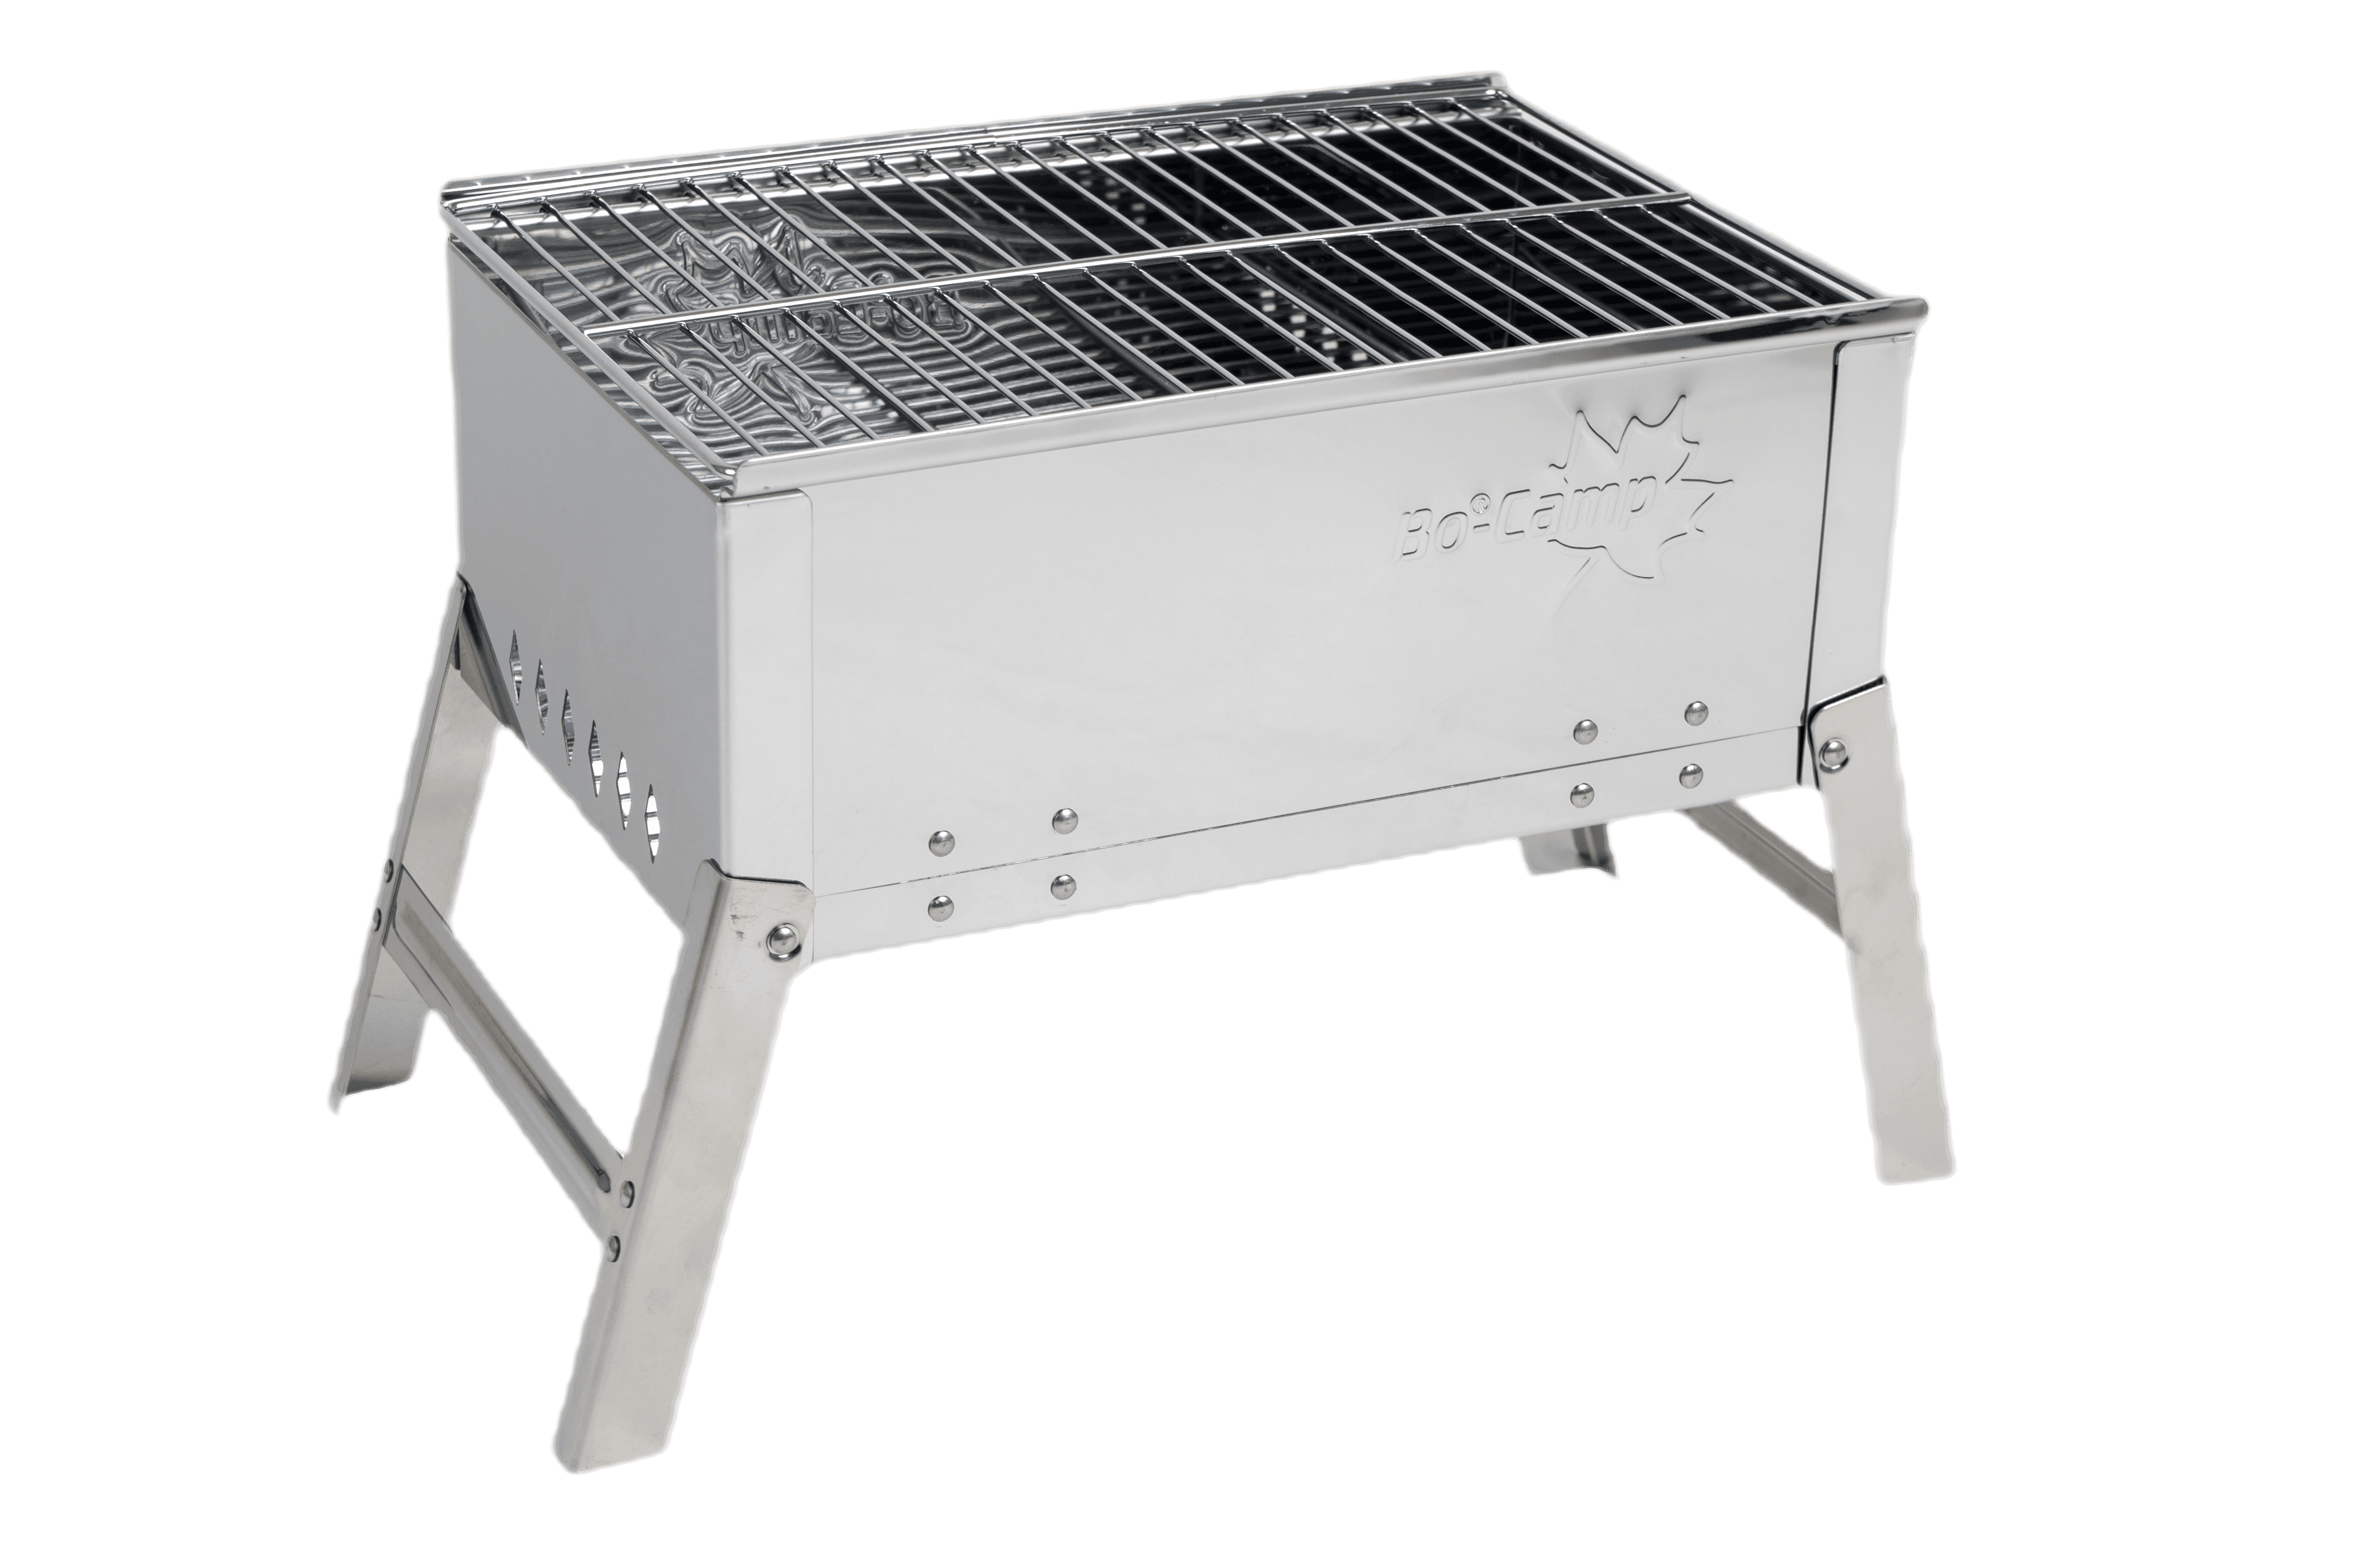 Barbecue compact deluxe rvs